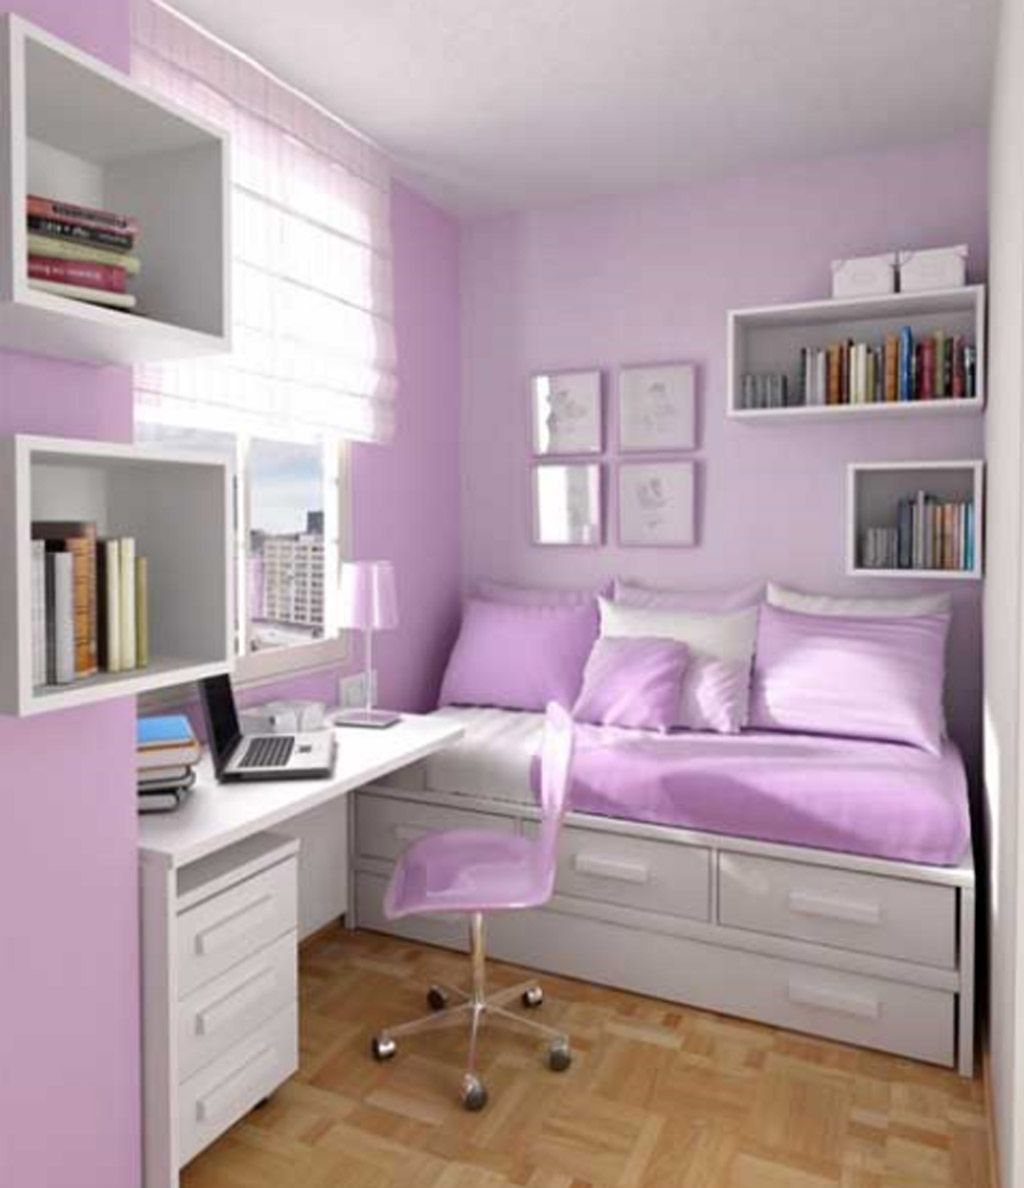 teenage girl bedroom ideas for small rooms cute bedroom ideas for teenage girls - best interior design blogs VYFZKEZ